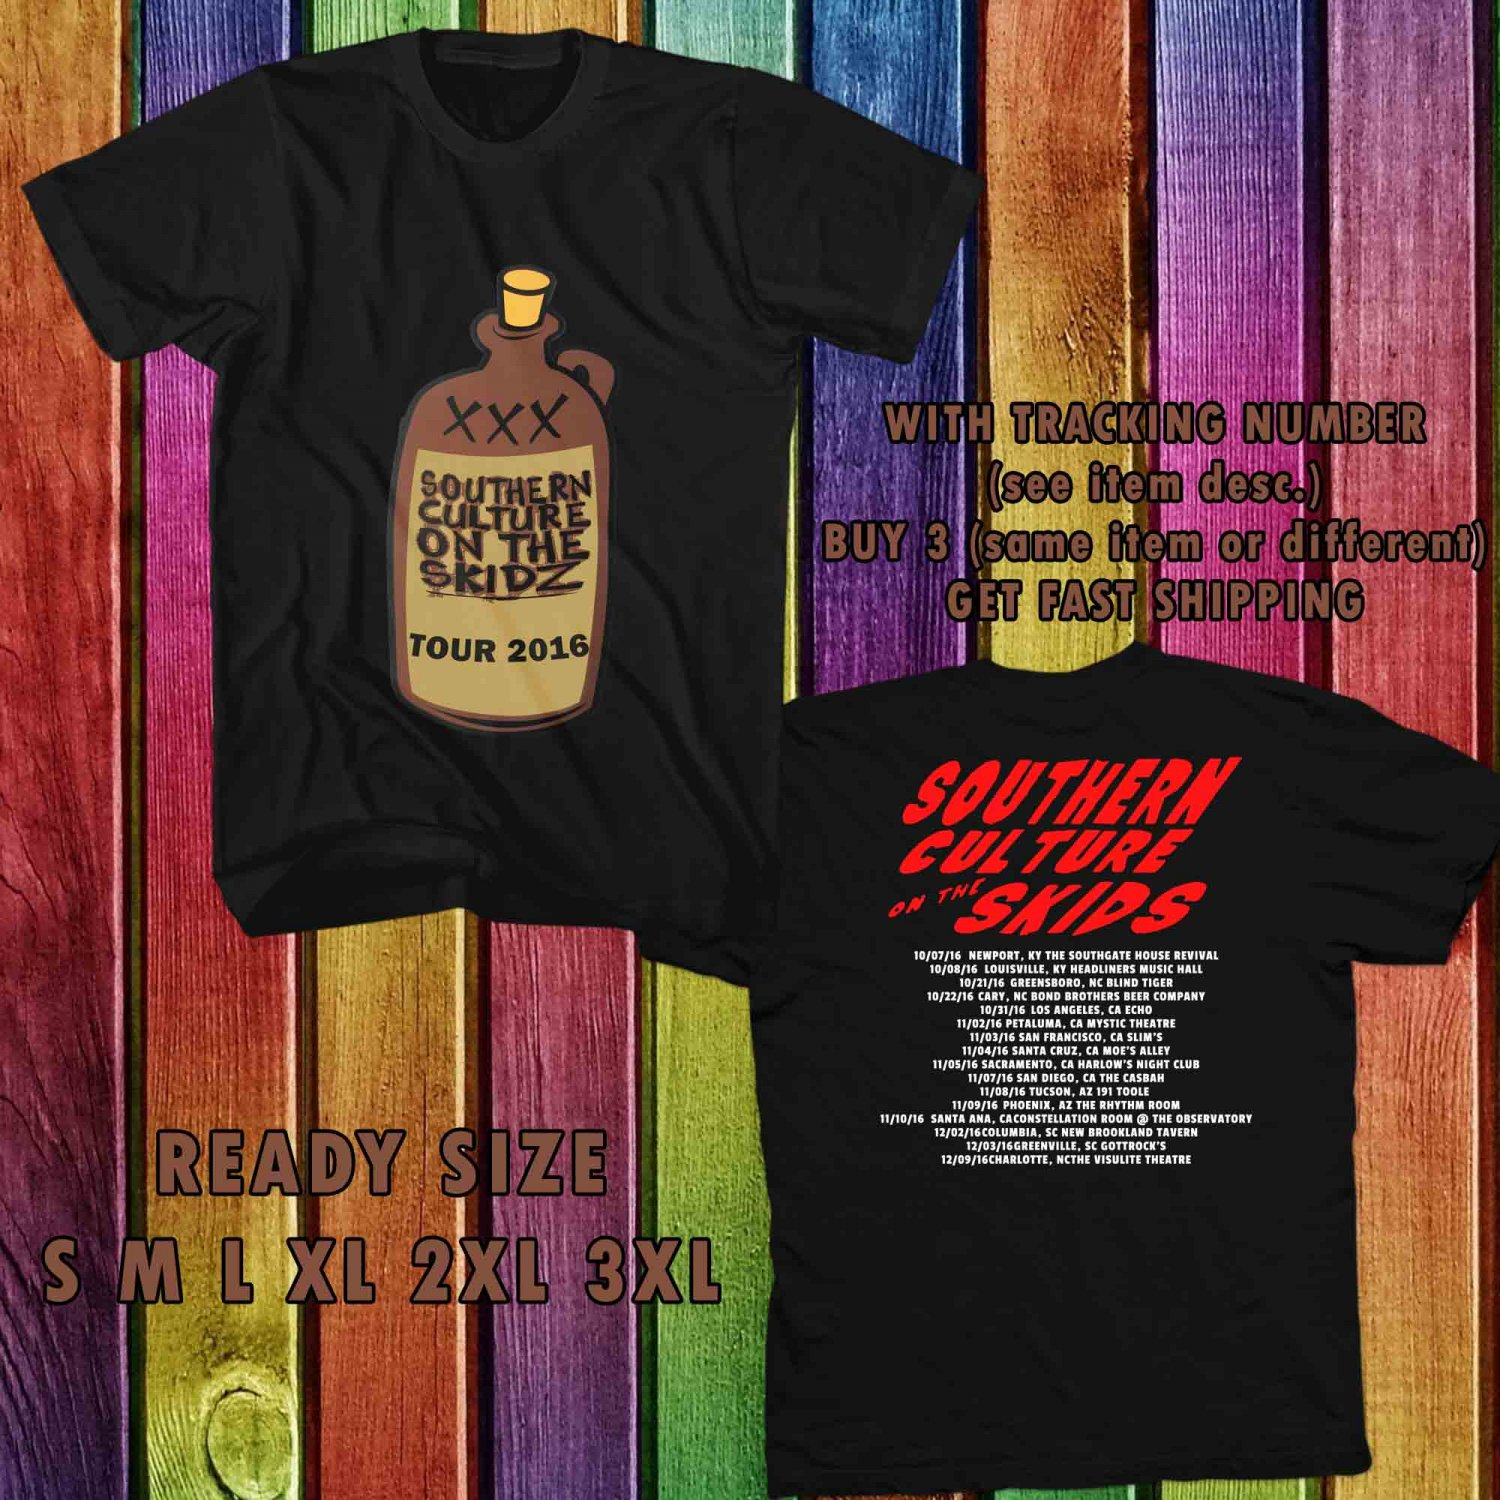 WOW SOUTHERN CULTURE ON THE KIDZ TOUR 2016 BLACK TEE S-3XL ASTR